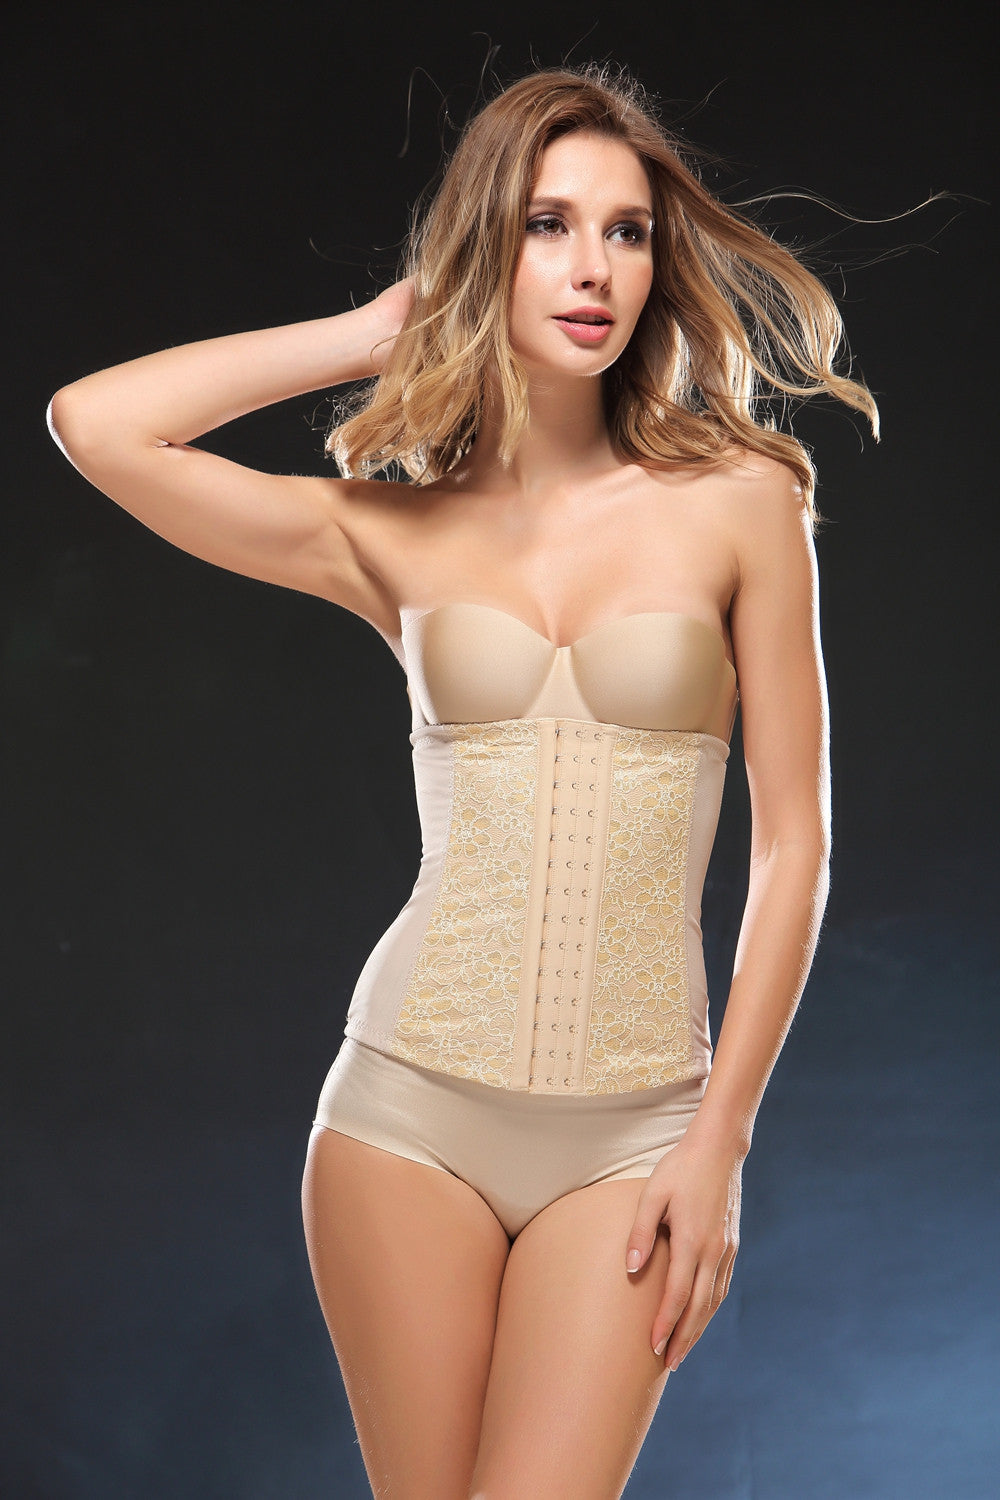 Women's Lace Super Thin Underbust Corset Waist Trainer Cincher Body Shaper Shapewear